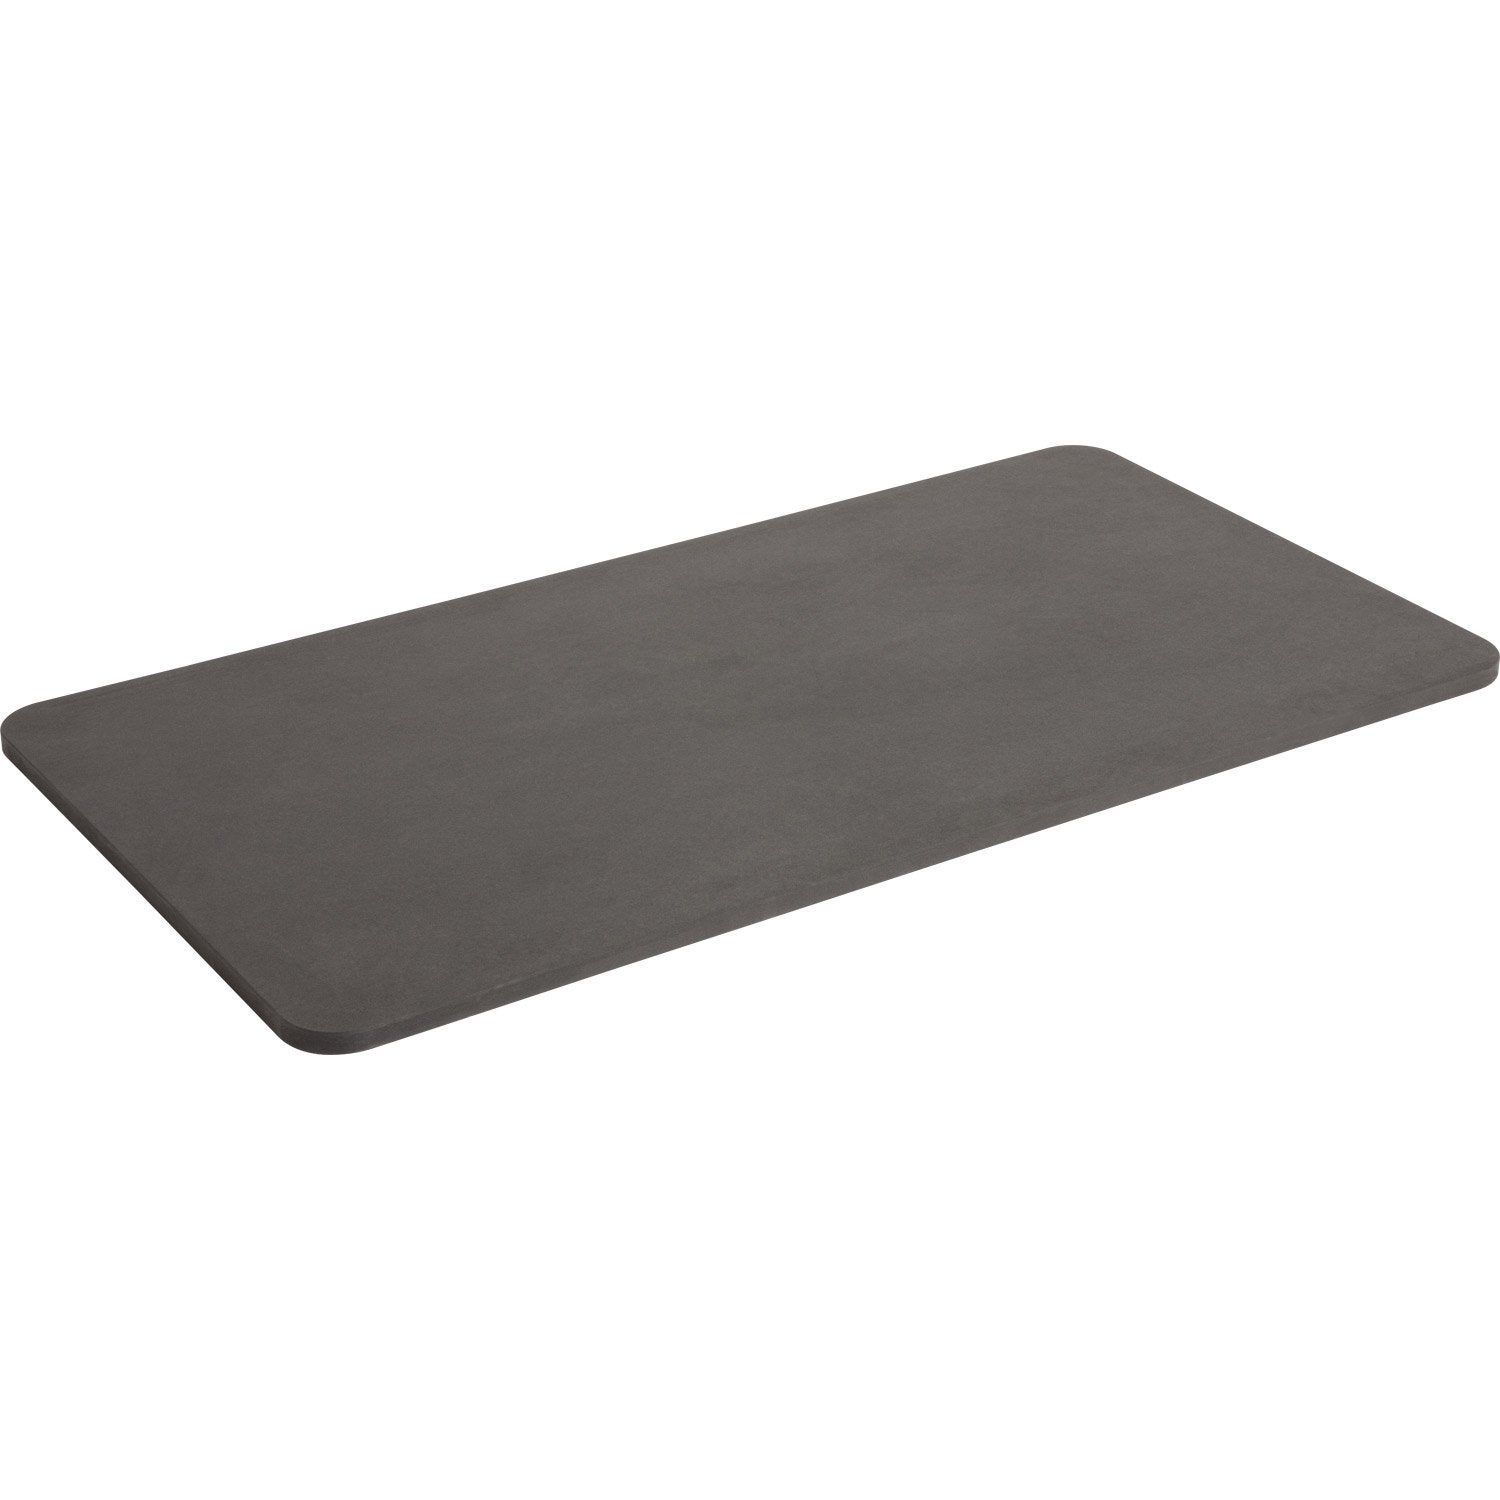 Plateau de table mdf gris l120 cm x l62 6 cm x p 19 mm leroy merlin - Plaque mdf leroy merlin ...